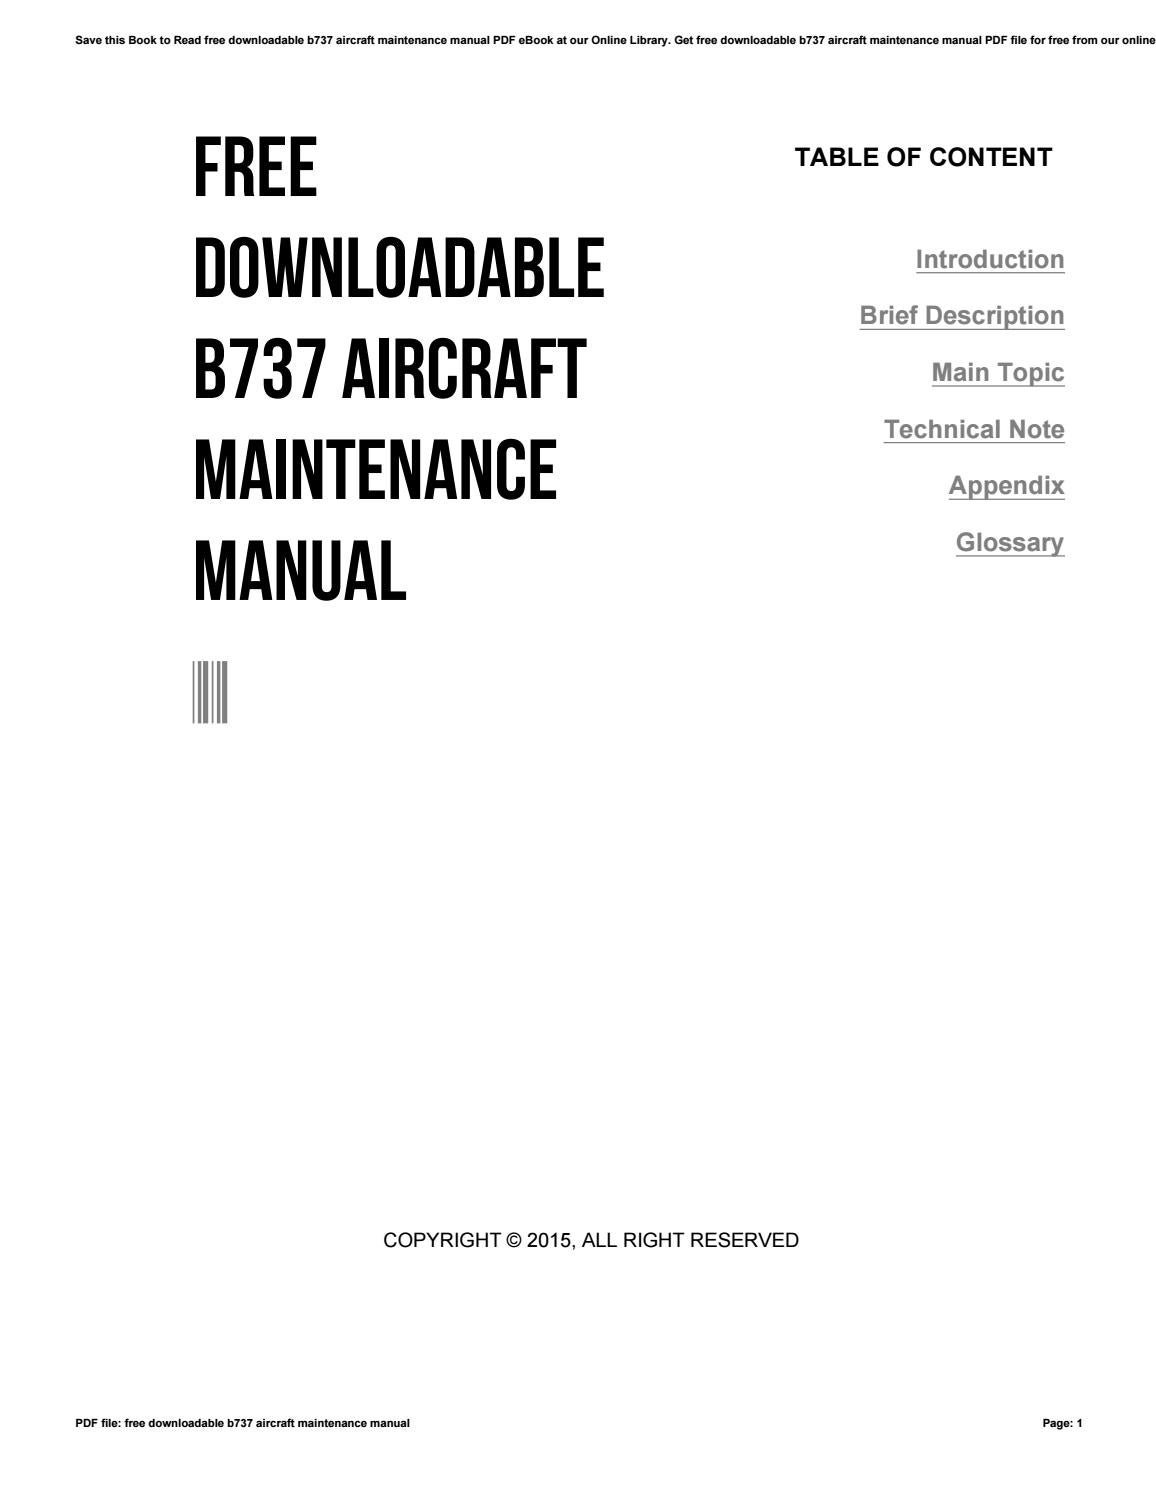 Free downloadable b737 aircraft maintenance manual by